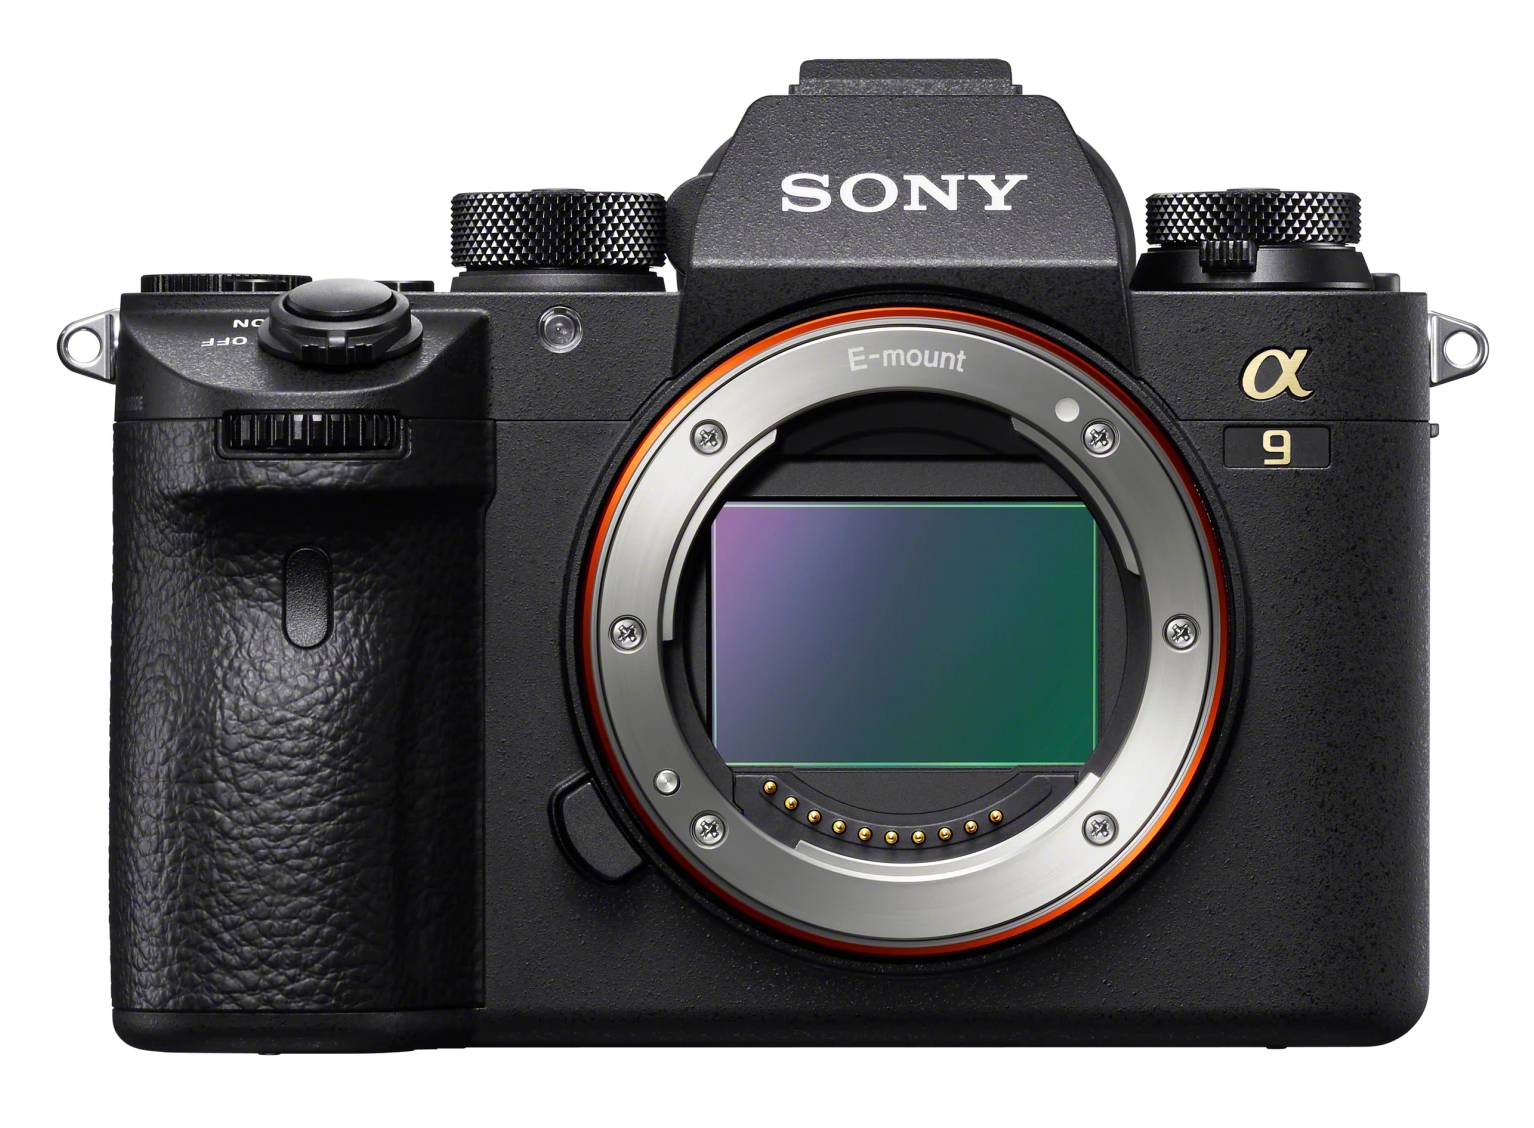 Sony A9 full-frame mirrorless camera launched: Price, features and more